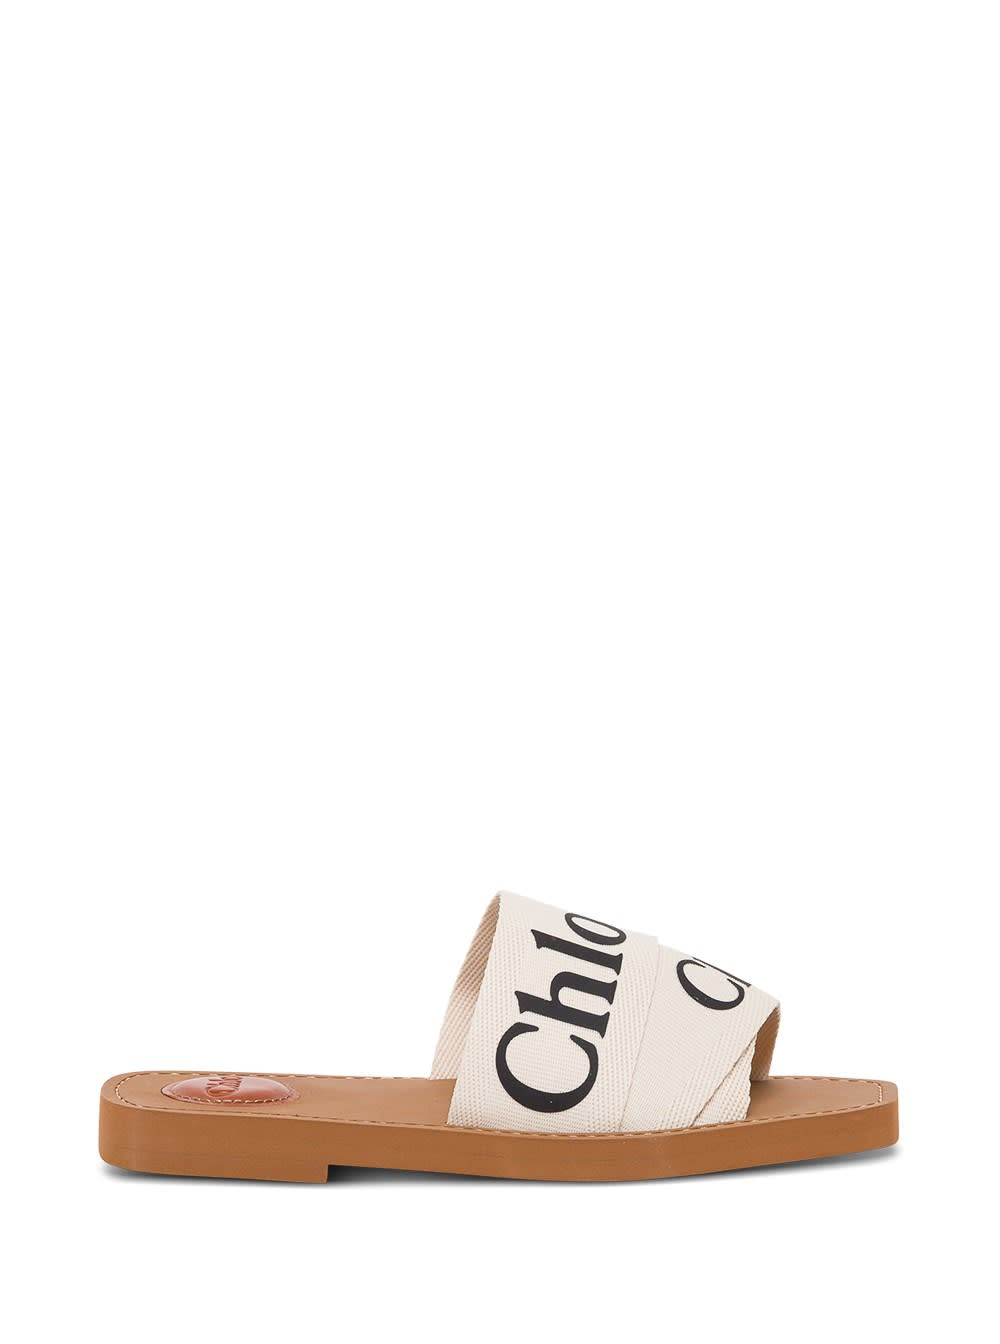 Chloé WOODY SLIDE SANDALS WITH LOGO